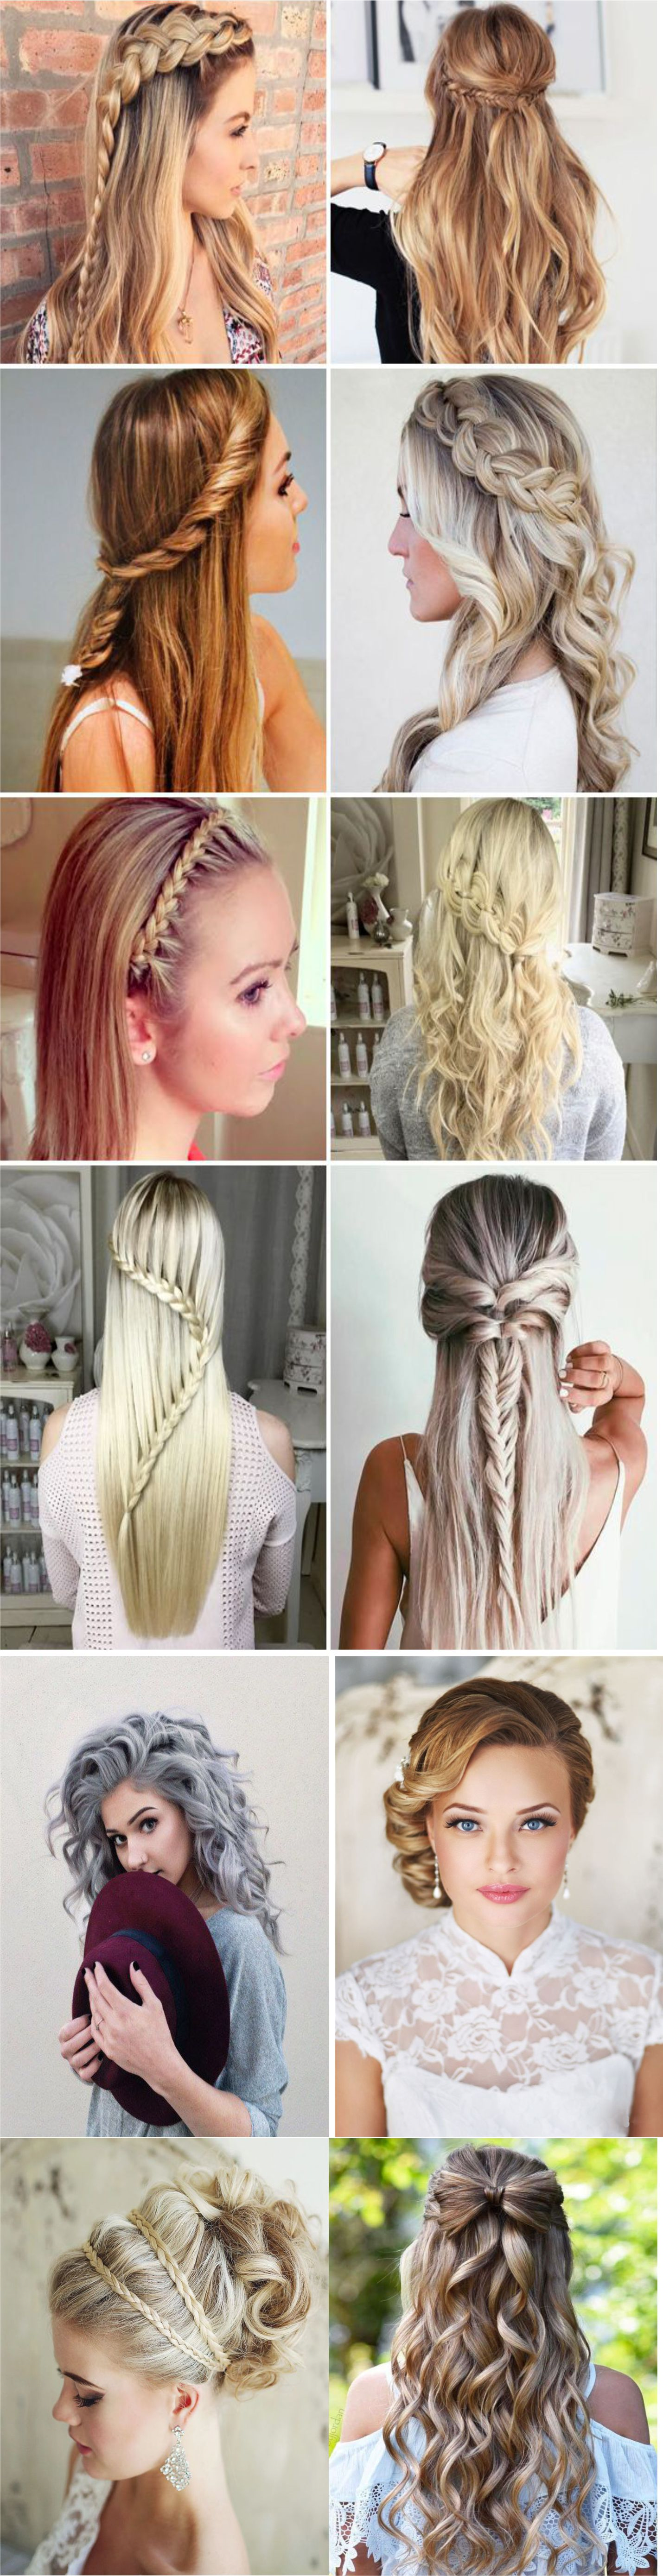 New Beautiful hair ideas to get inspire